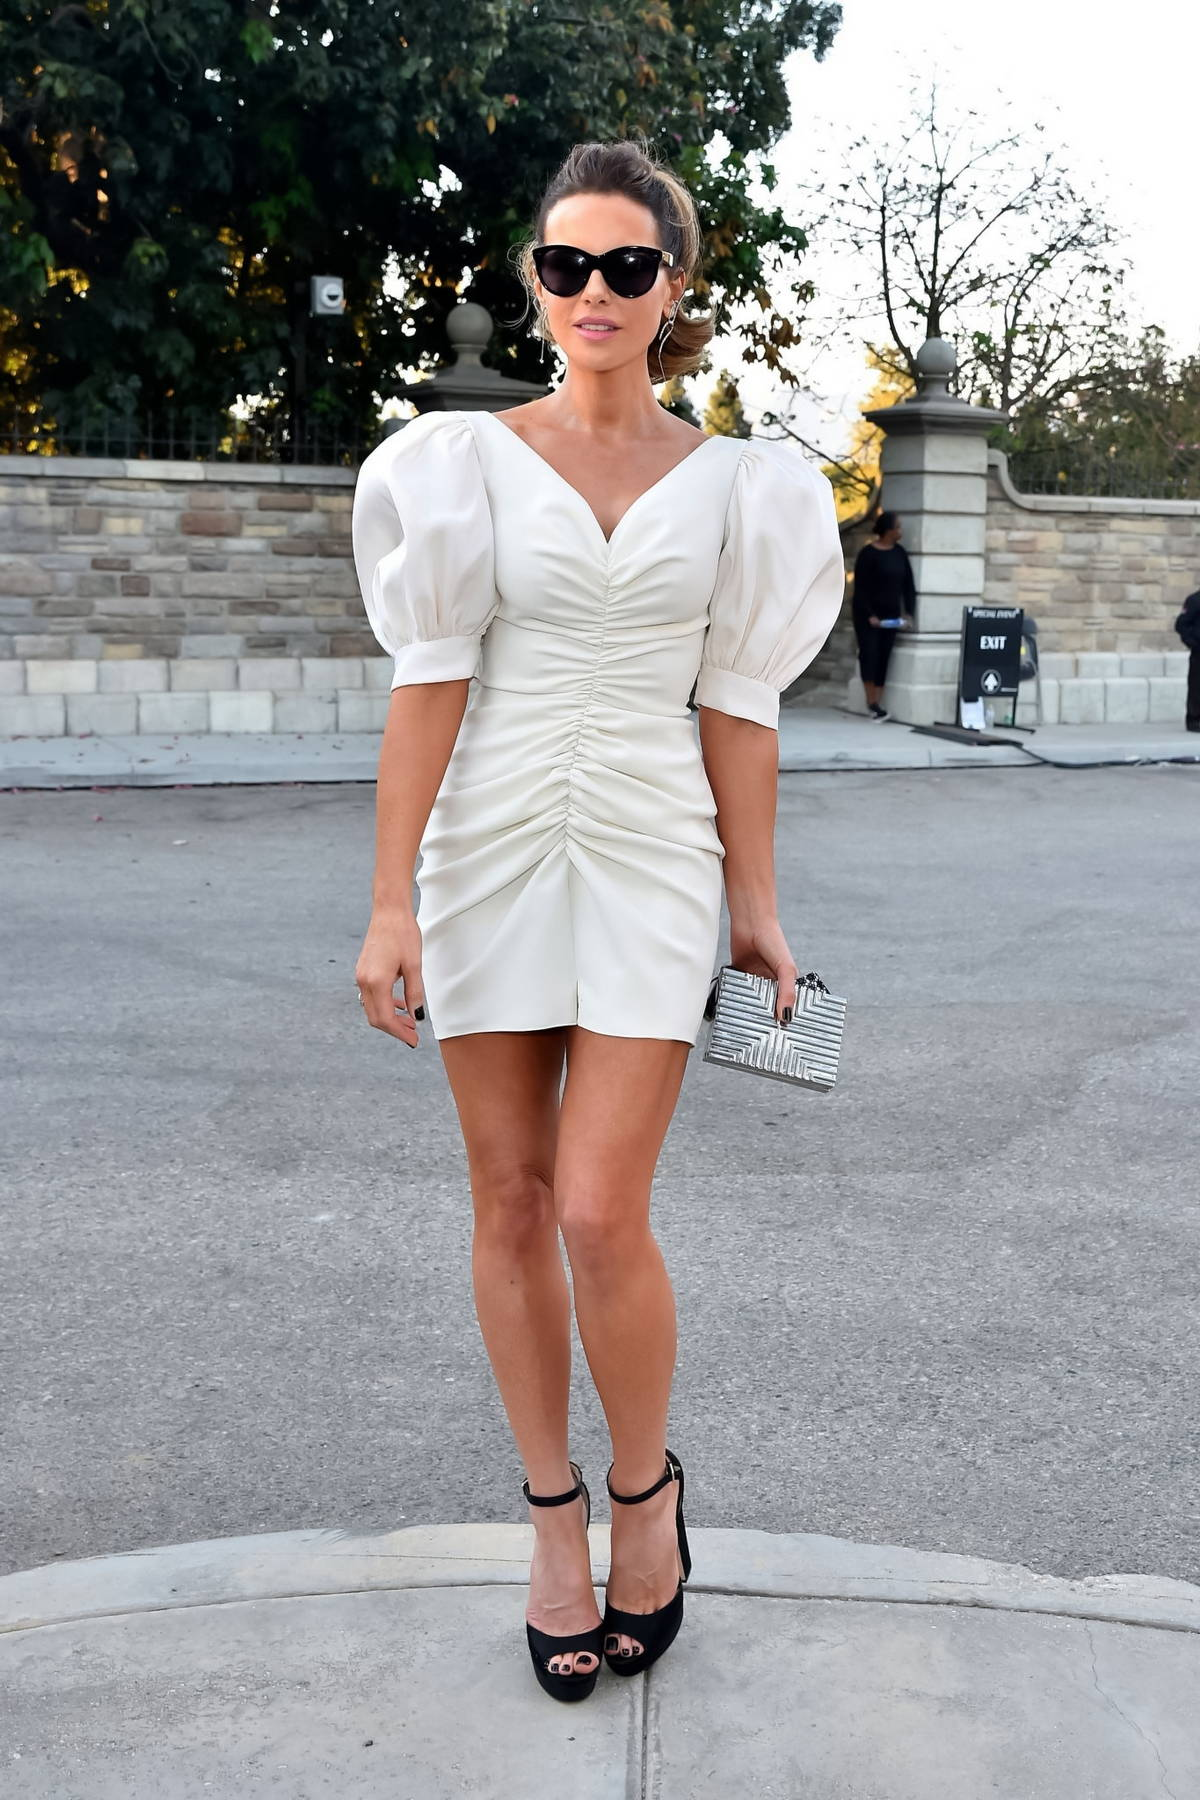 Kate Beckinsale attends CTAOP's Night Out in Universal City, California